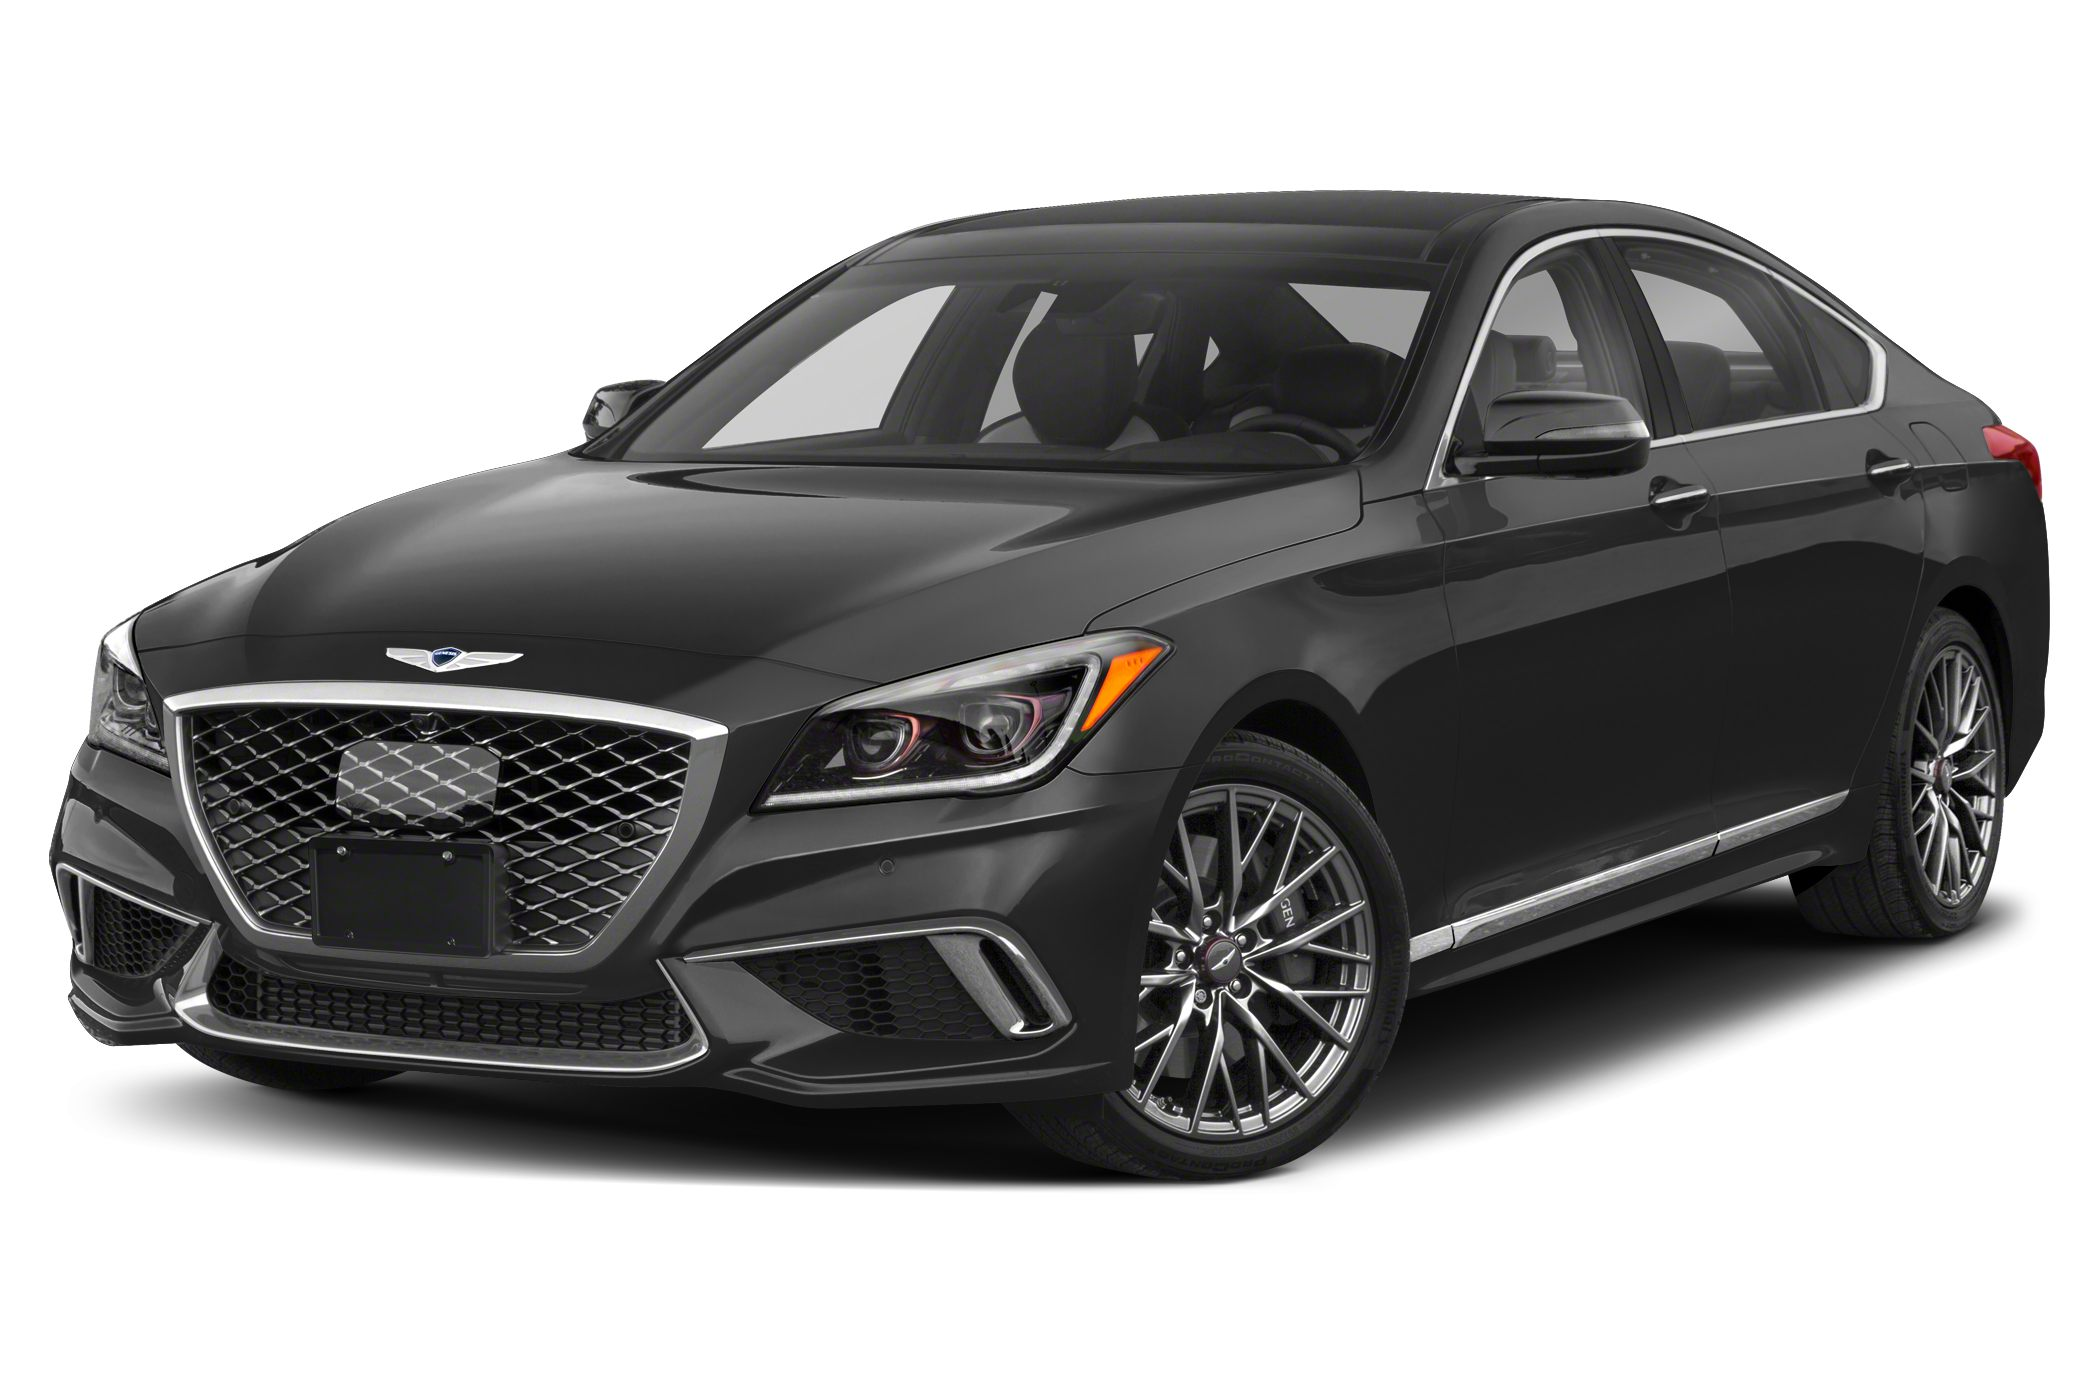 2019 Genesis G80 3 3t Sport 4dr All Wheel Drive Sedan Pictures